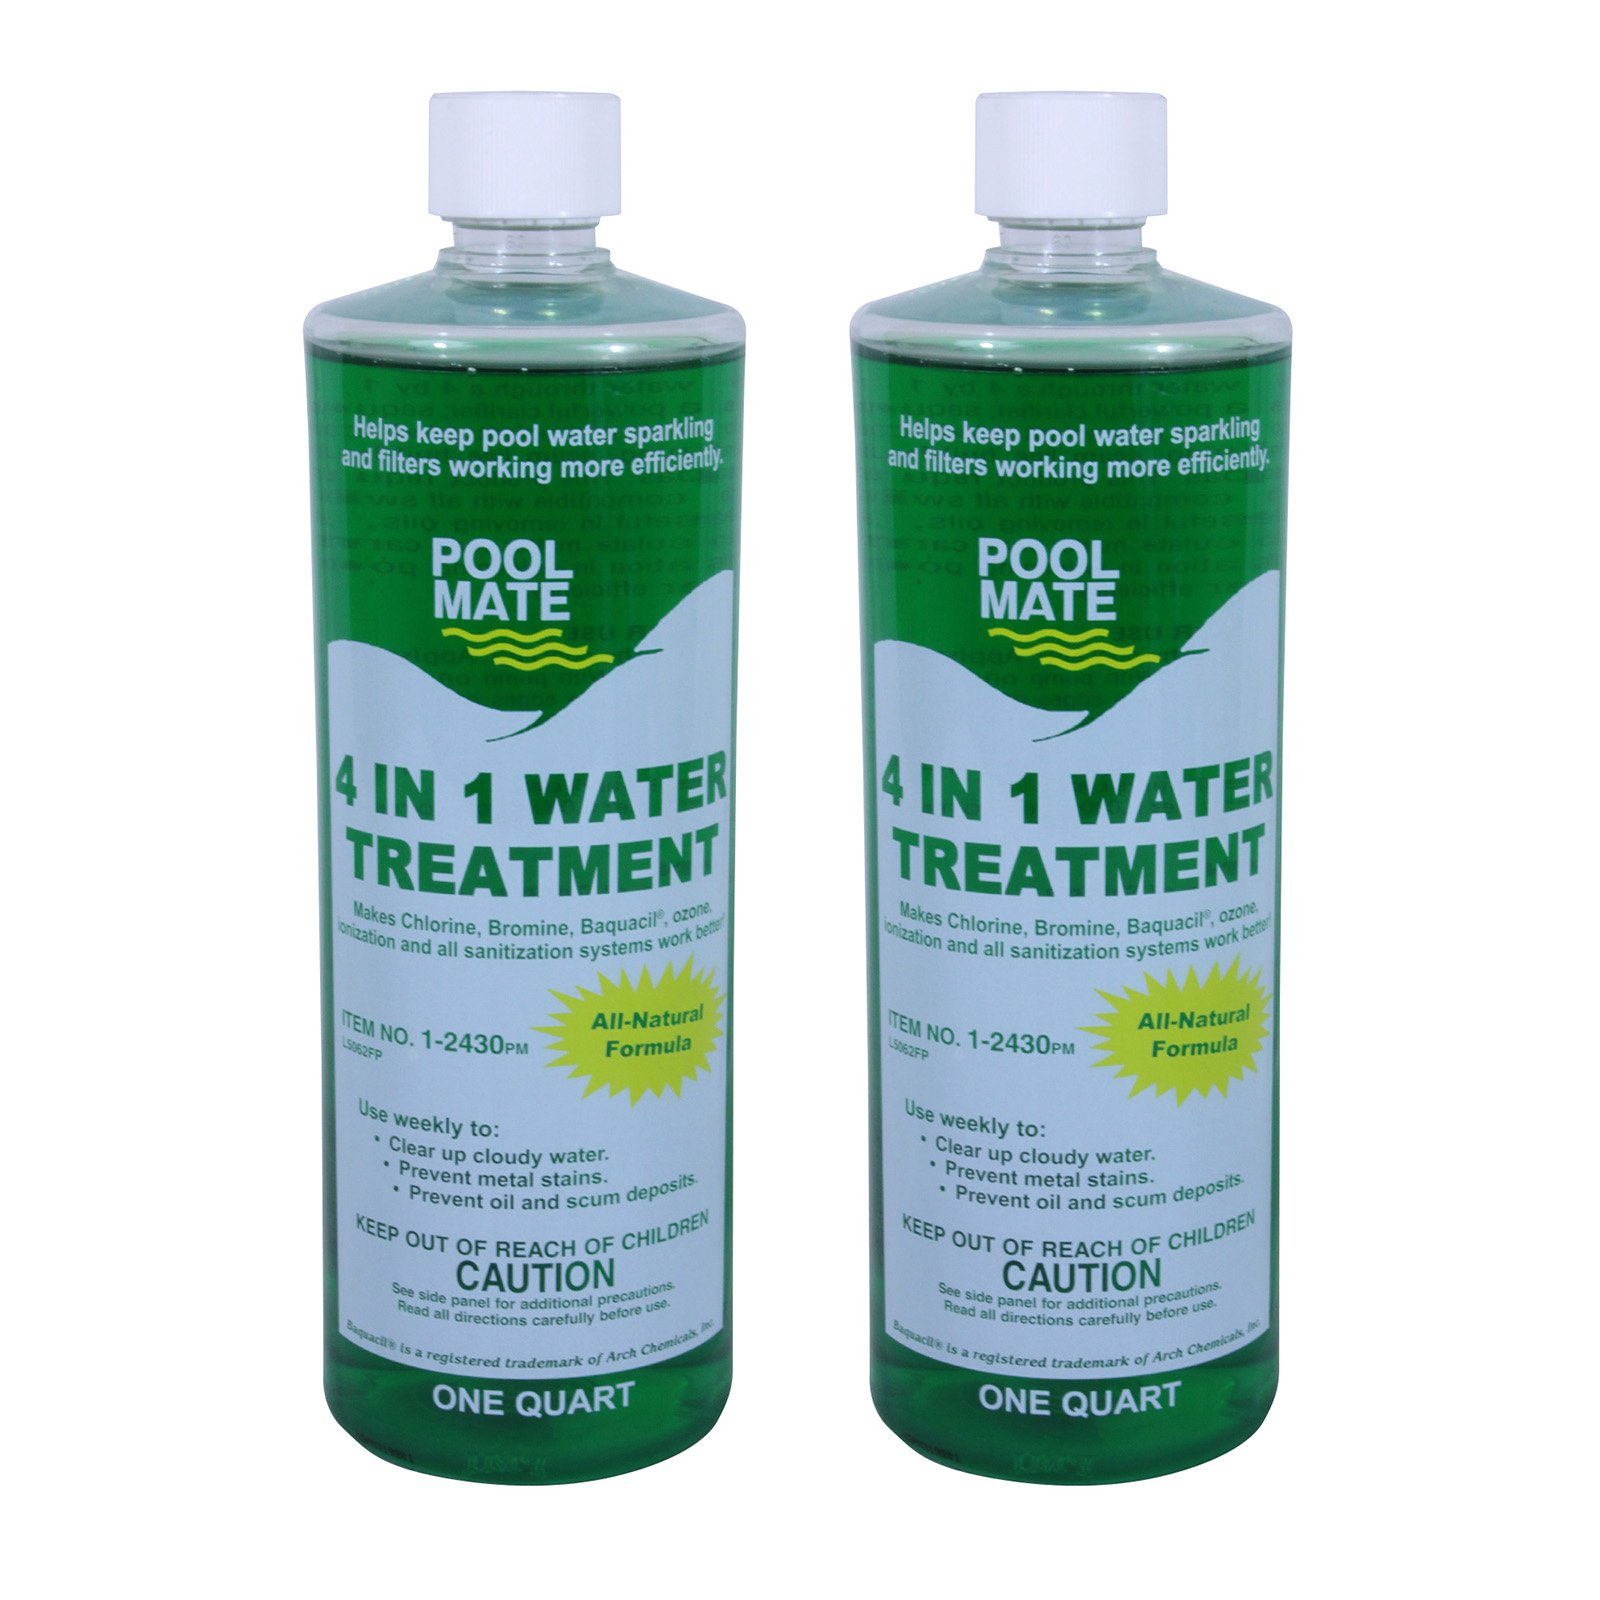 Pool Mate 4-in-1 Natural Water Treatment and Clarifier